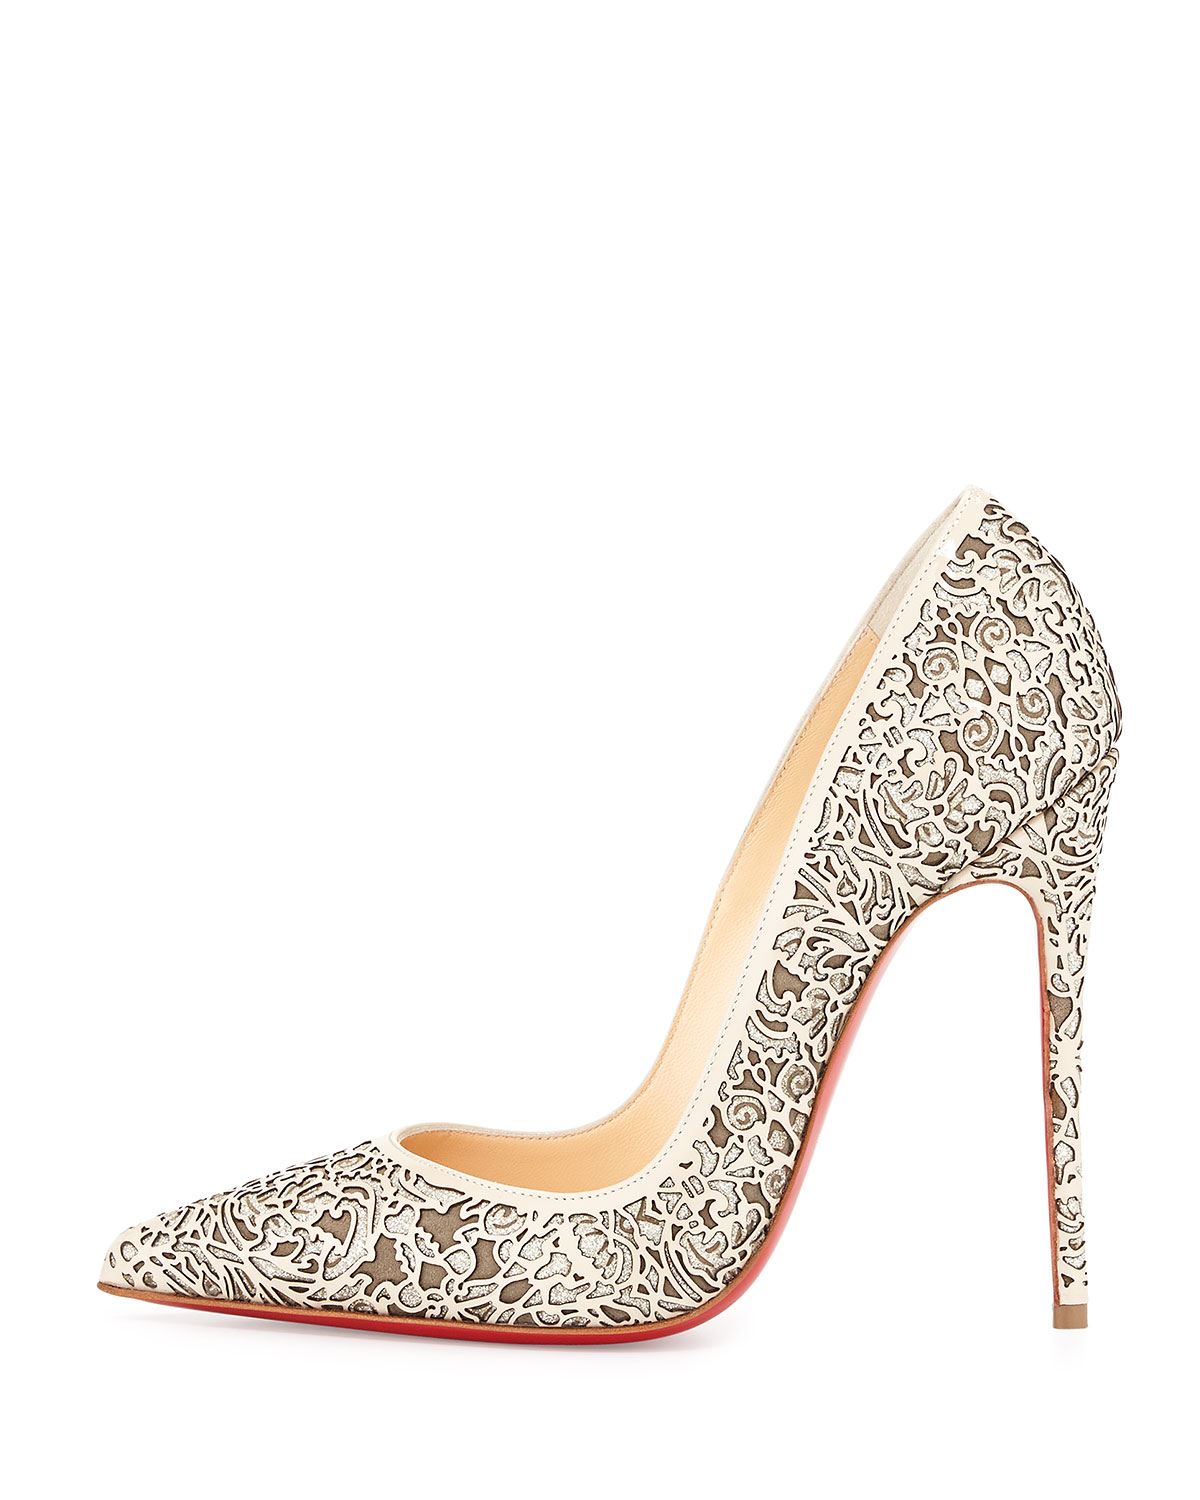 880225090a1b Christian Louboutin Bianca Patent 120mm Leather Pumps – approx. R12